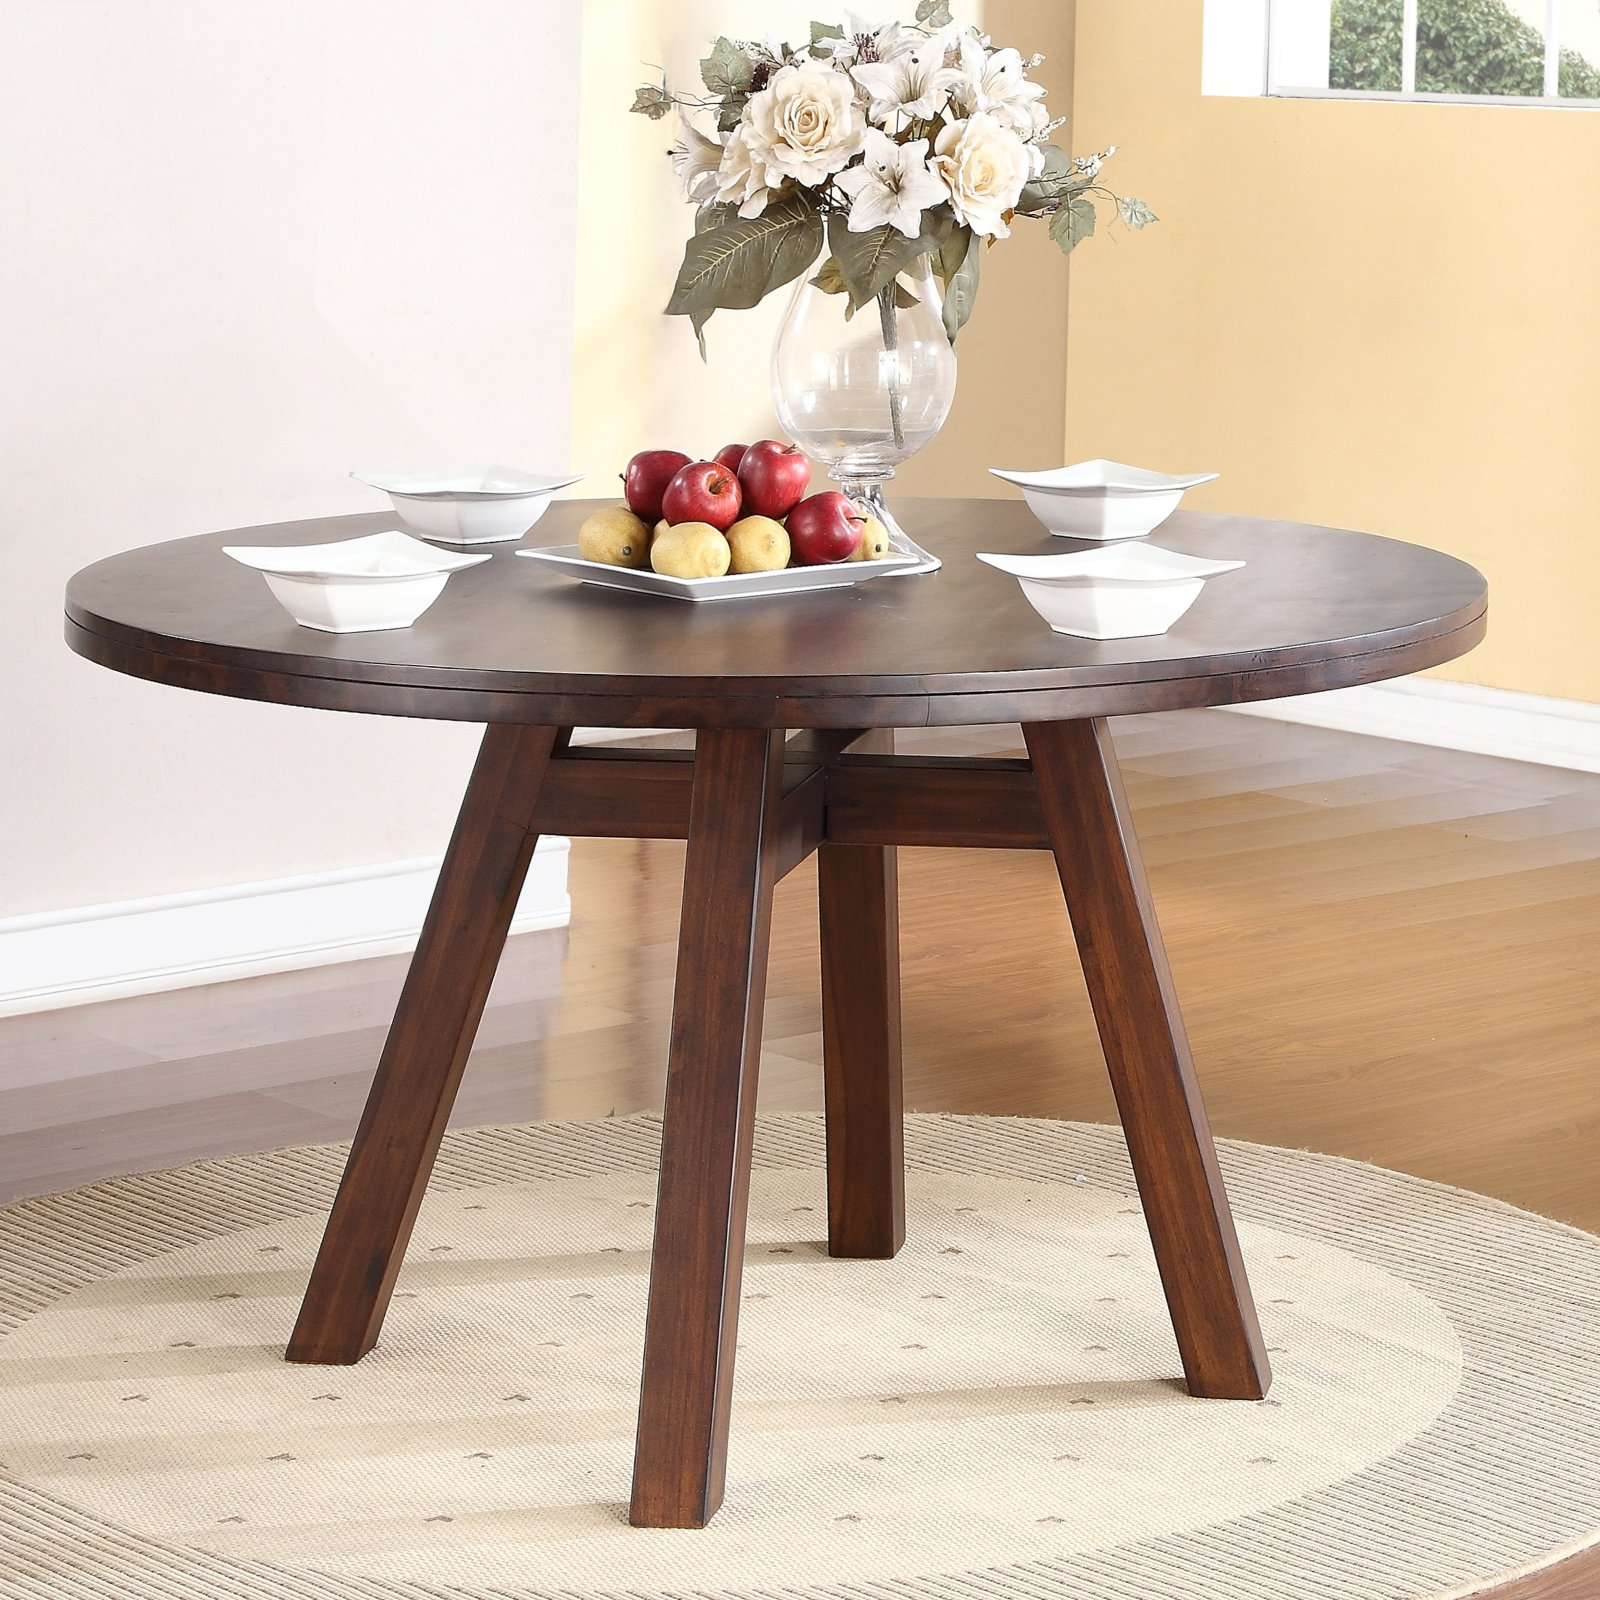 modus portland solid wood round dining table medium on solid wood dining table id=87705